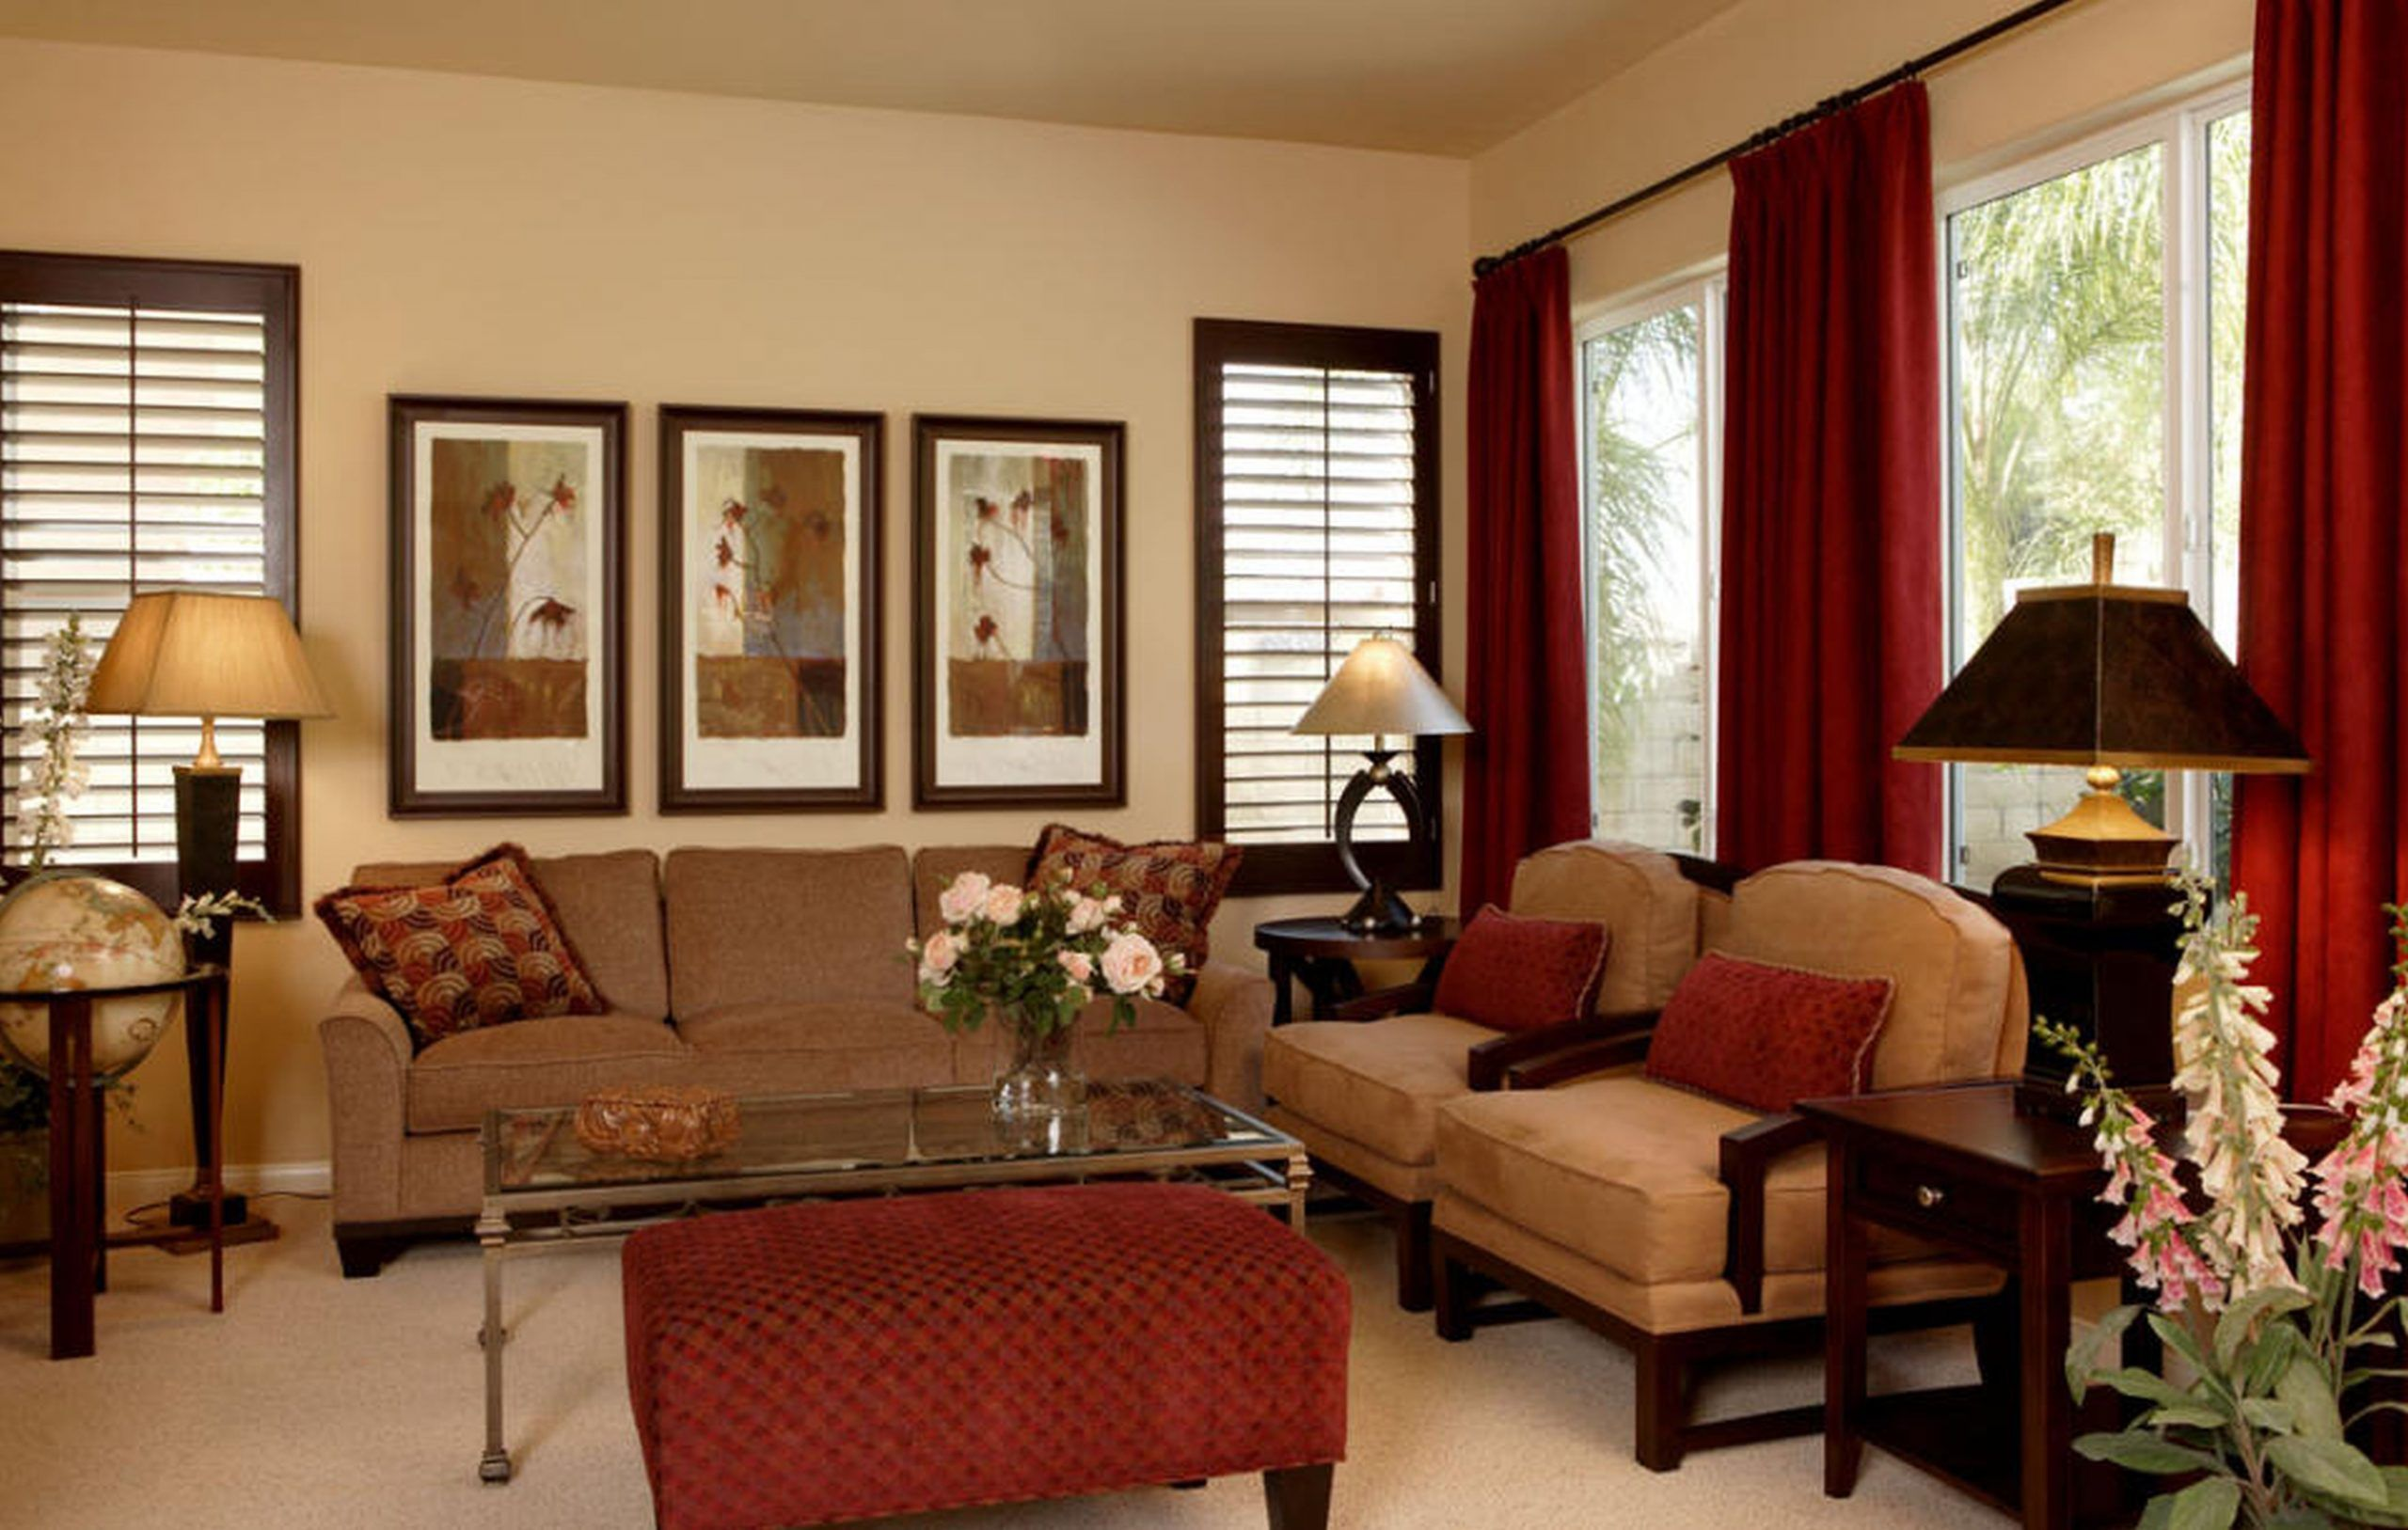 Westend61/getty images do you have a perfect living room? Living Room Decor In Red and Brown 20 Beautiful ...